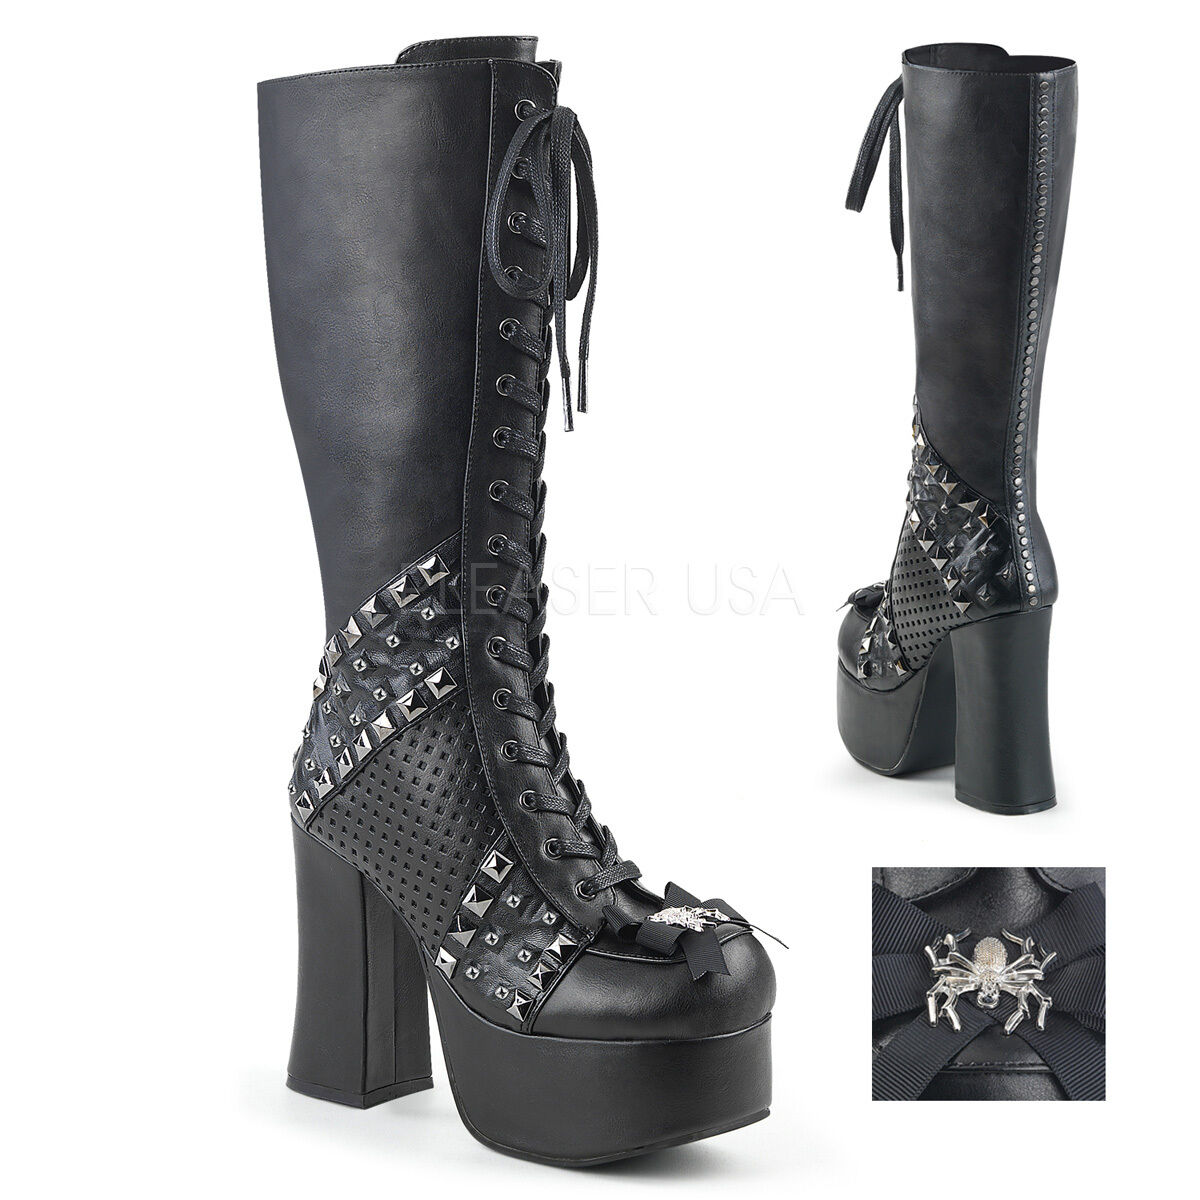 CHARADE-150  BIKER RAVE GOTH PUNK STUDDED STUDDED STUDDED LACE UP CHUNKY PLATFORM KNEE HIGH BOOT ef4123